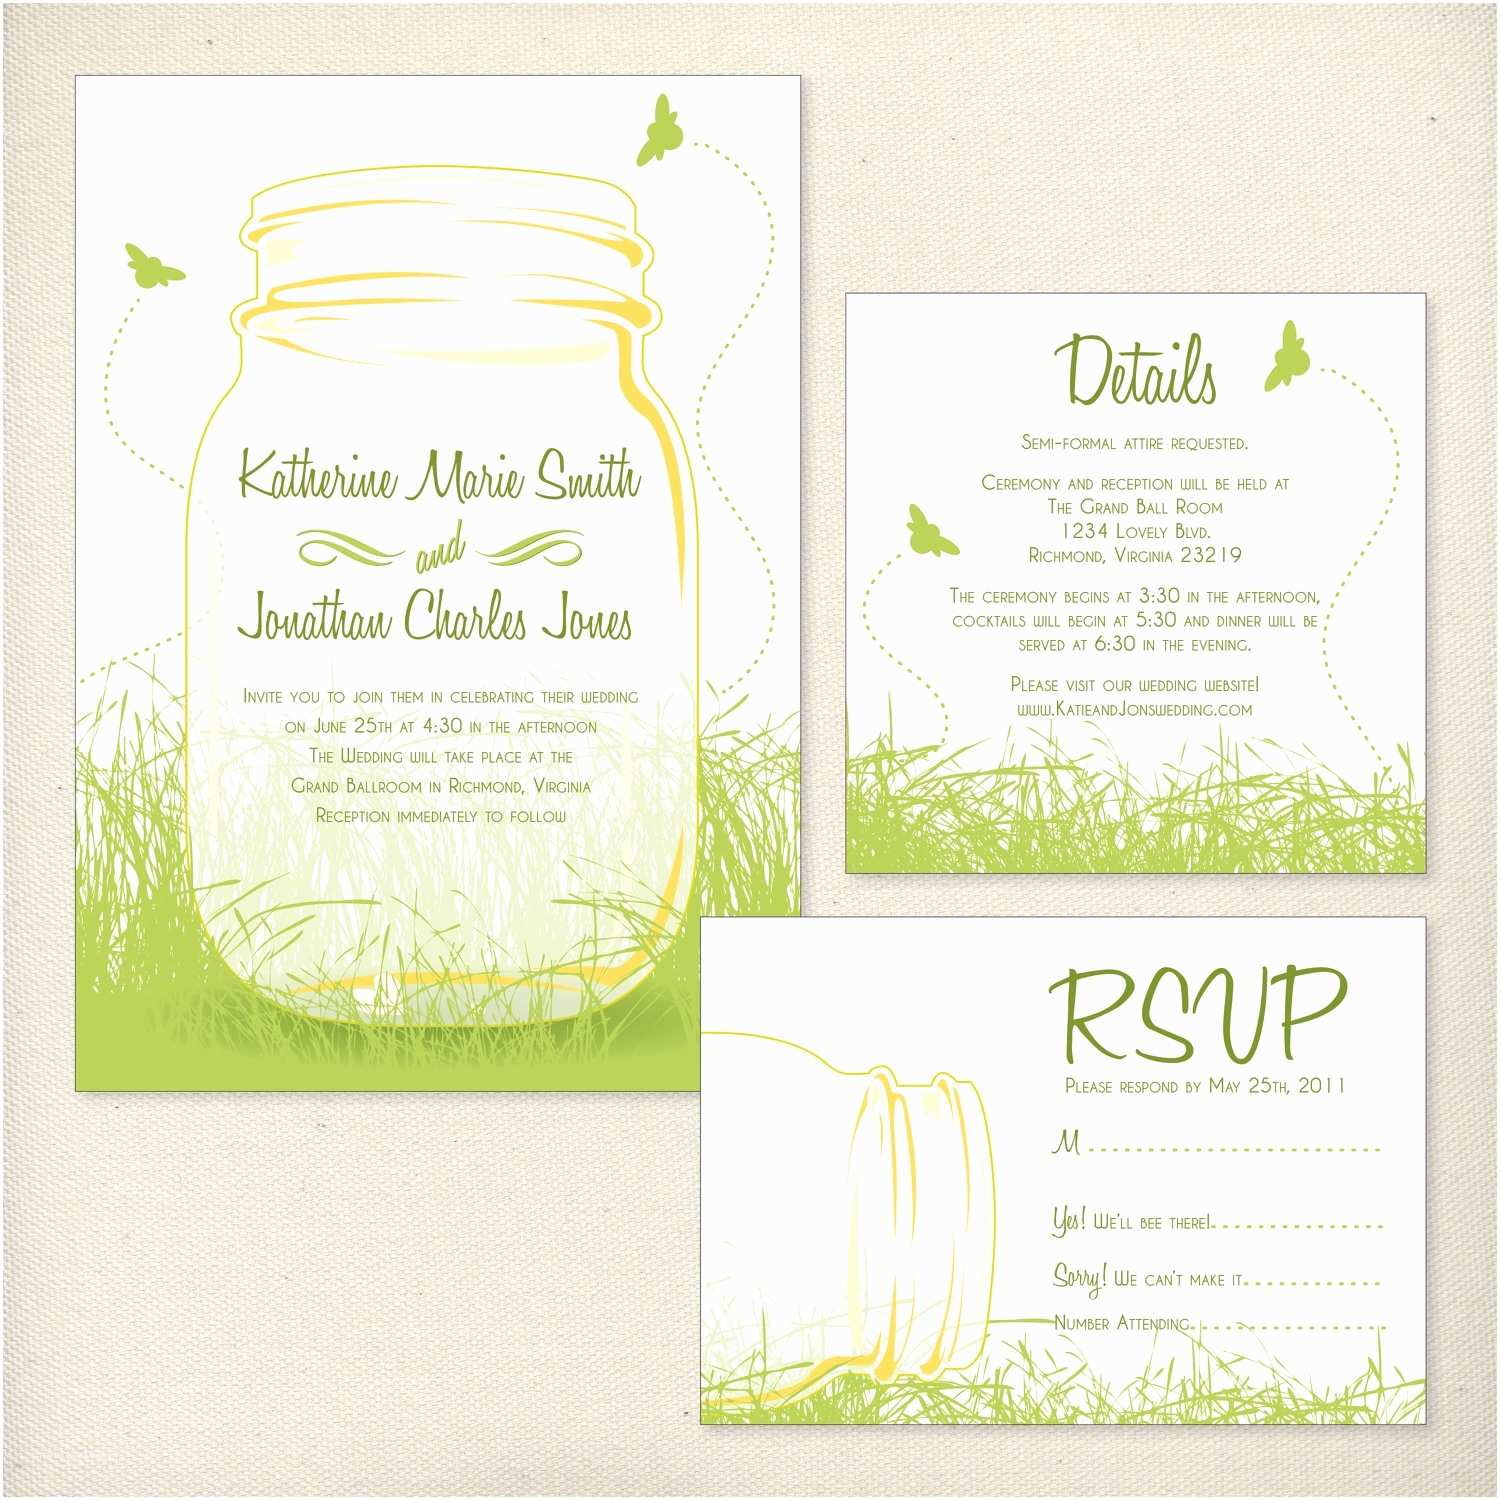 How to Create Wedding Invitation How to Make Wedding Invitations Costco Ideas with Smart